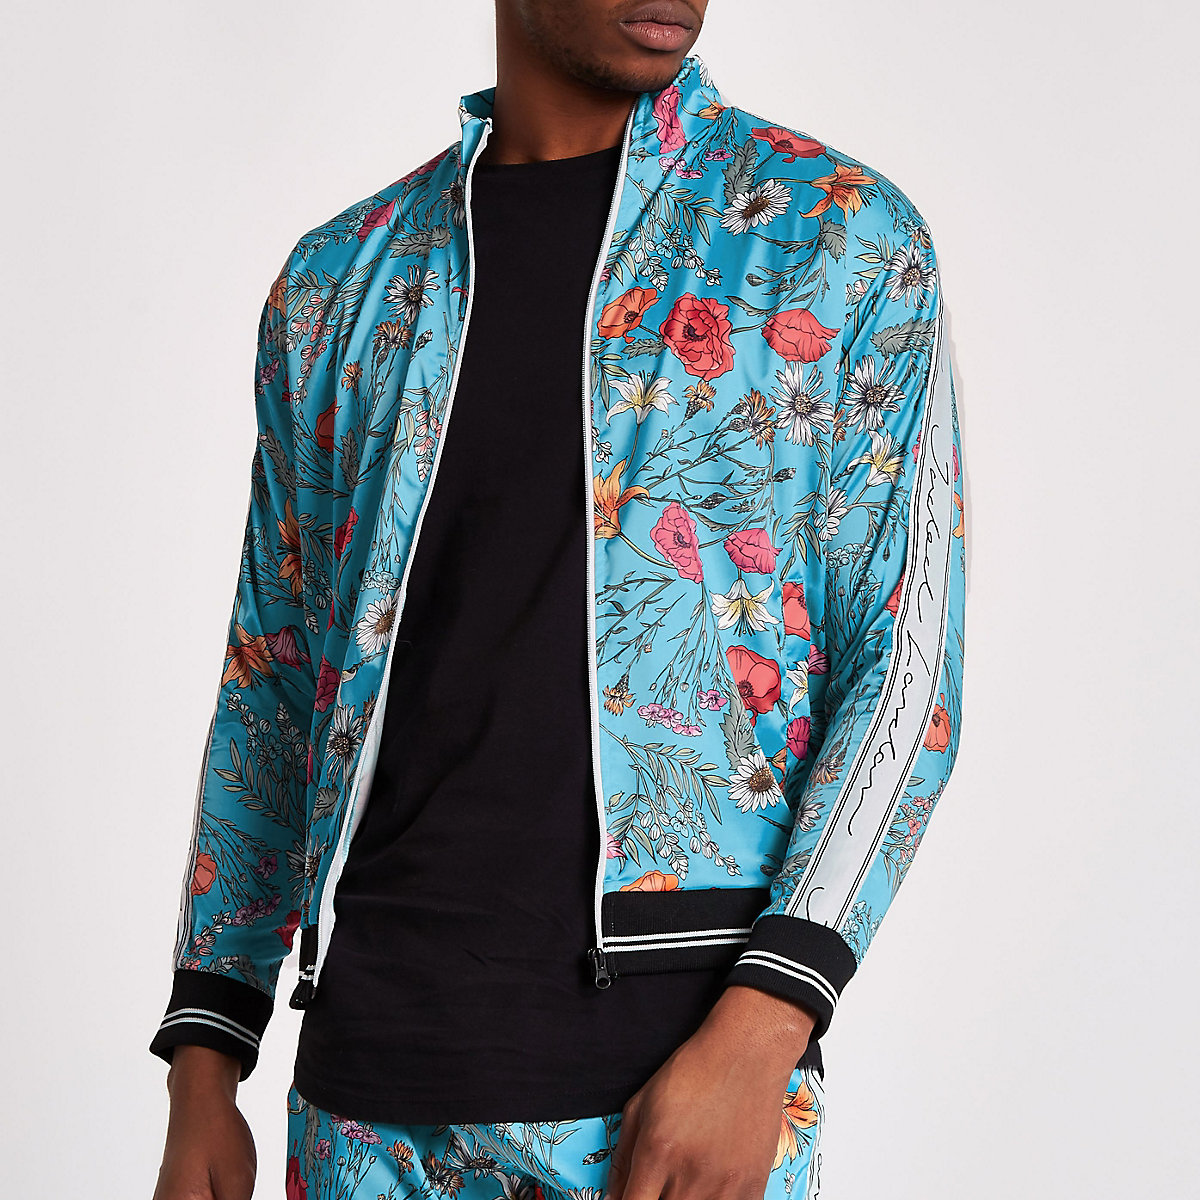 Jaded blue floral satin track top